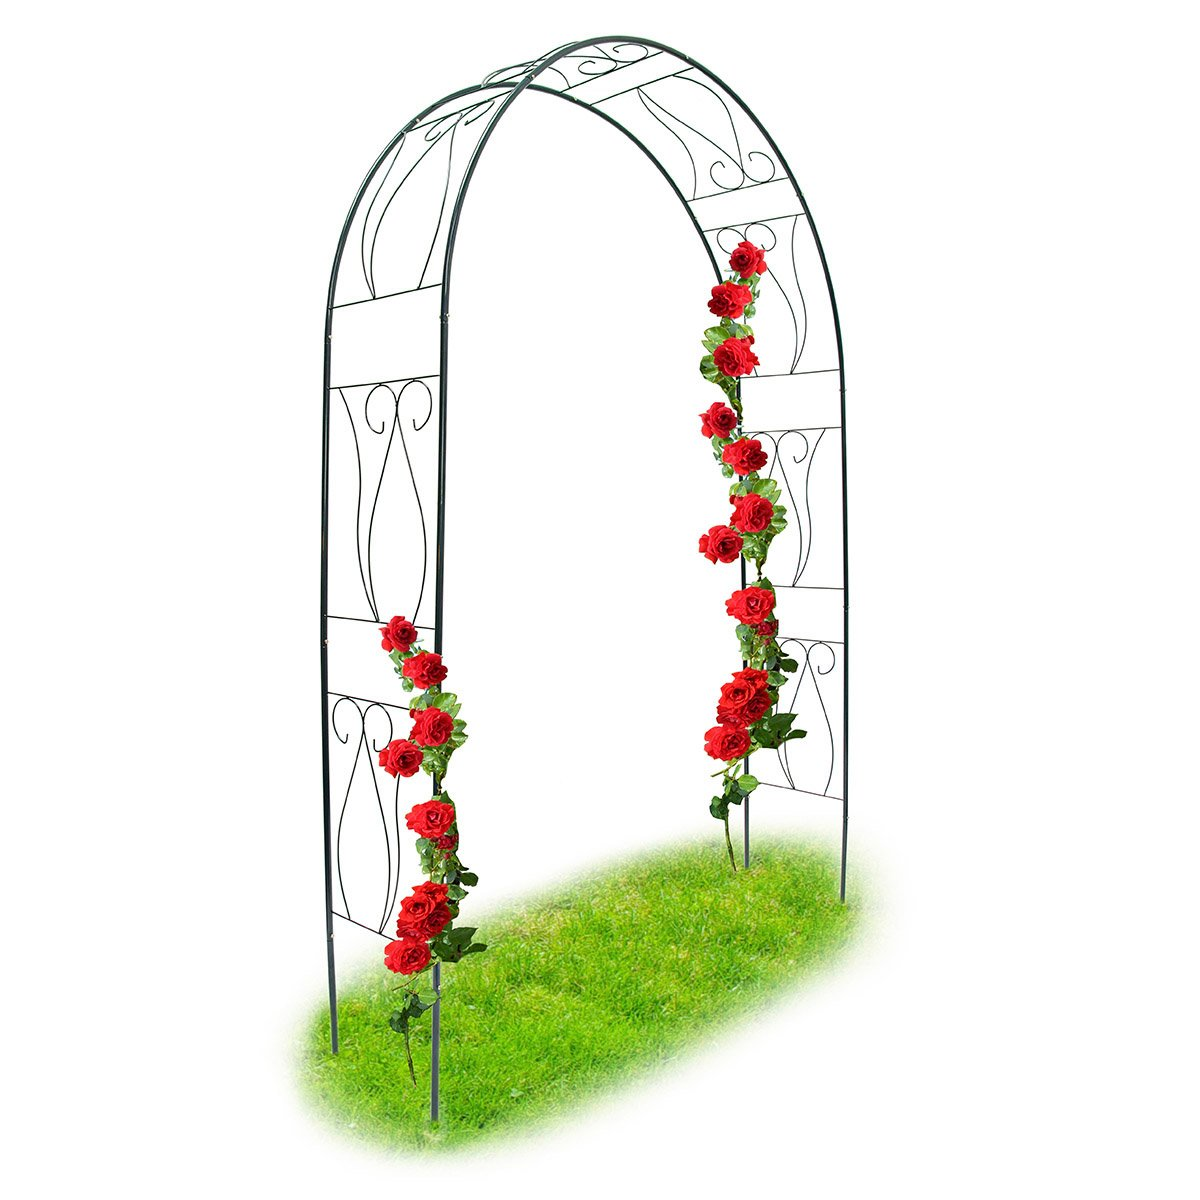 Relaxdays Trellis Archway, Powder-Coated Steel Support Arch for Climbing Plants, 2.3 m Tall, Dark Green 10018869